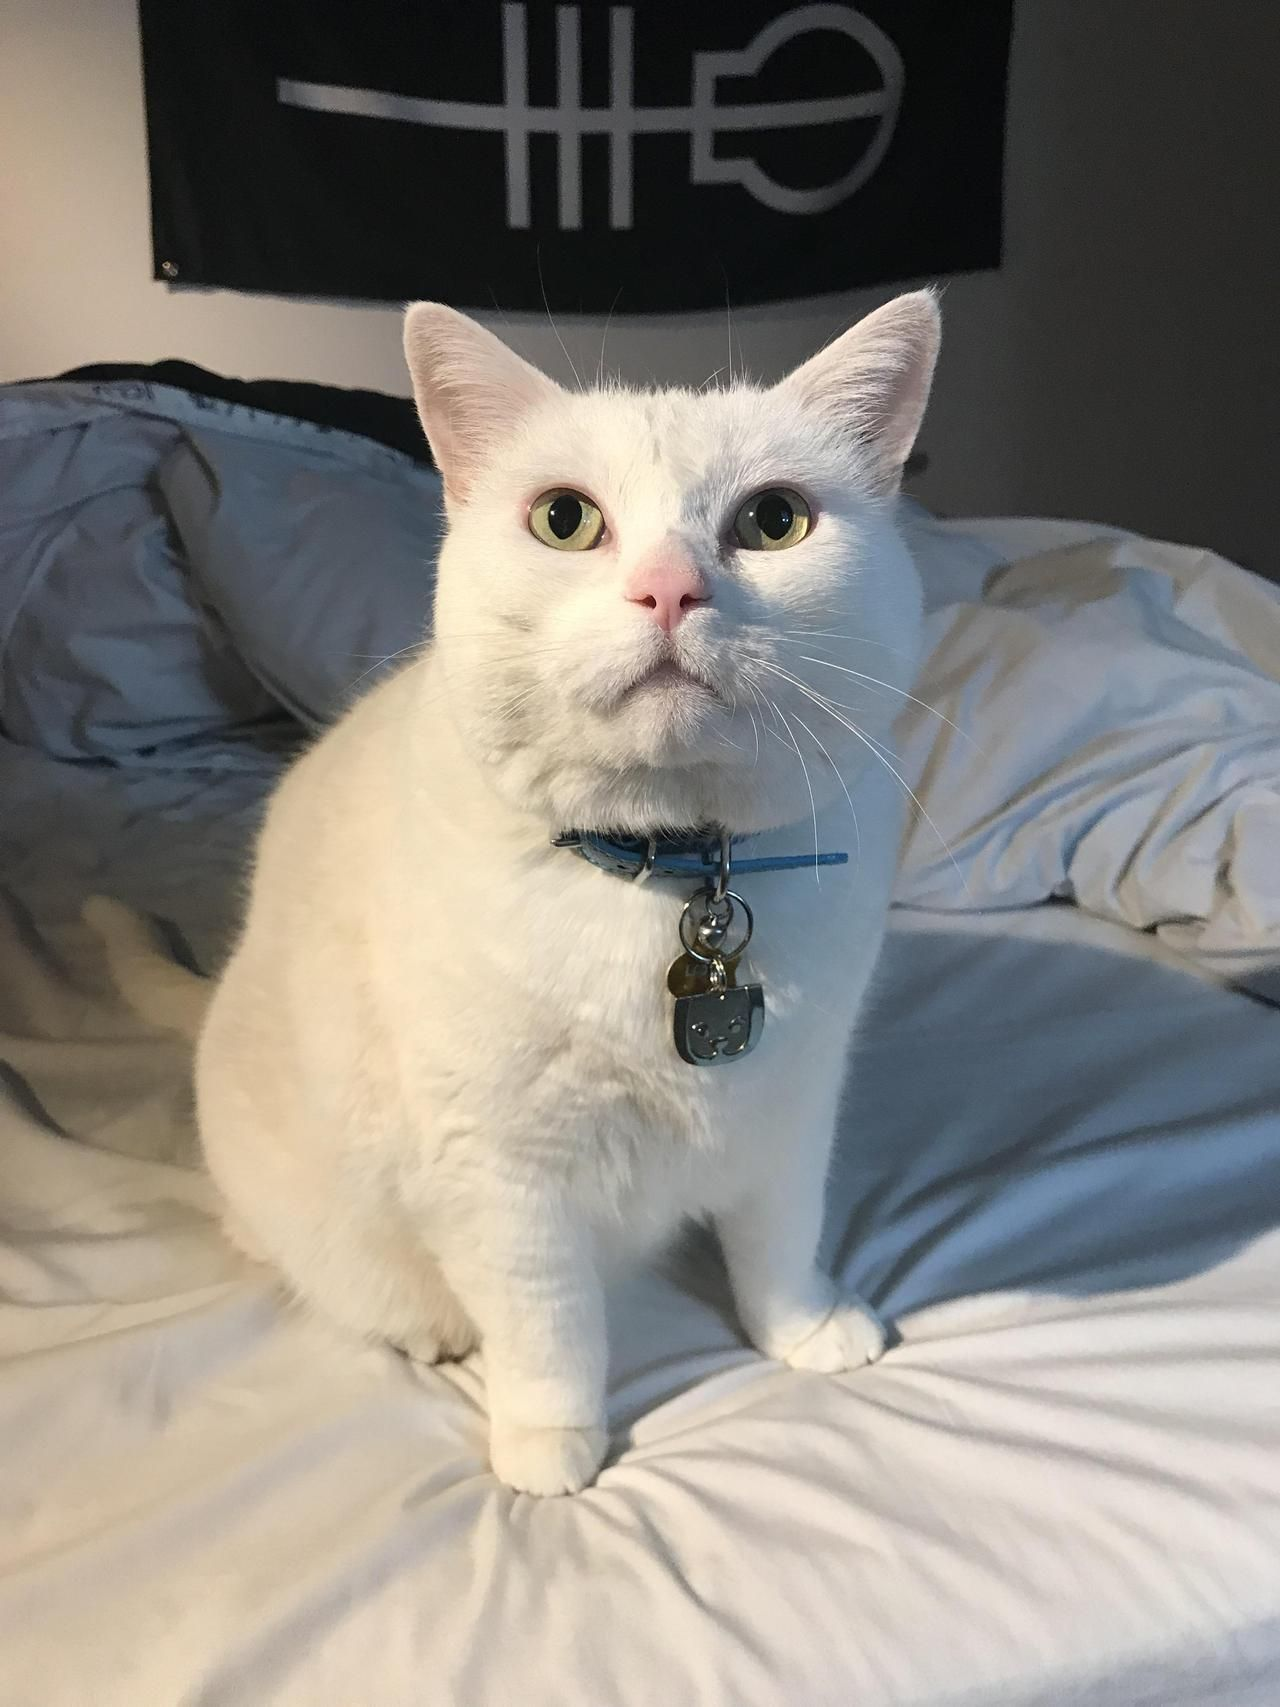 Its This Regal Ladys Birthday Today Shes 5 By Theokayestchef Cats Kitten Catsonweb Cute Adorable Funny Sleepy Anima Funny Cat Pictures Cute Cats I Love Cats